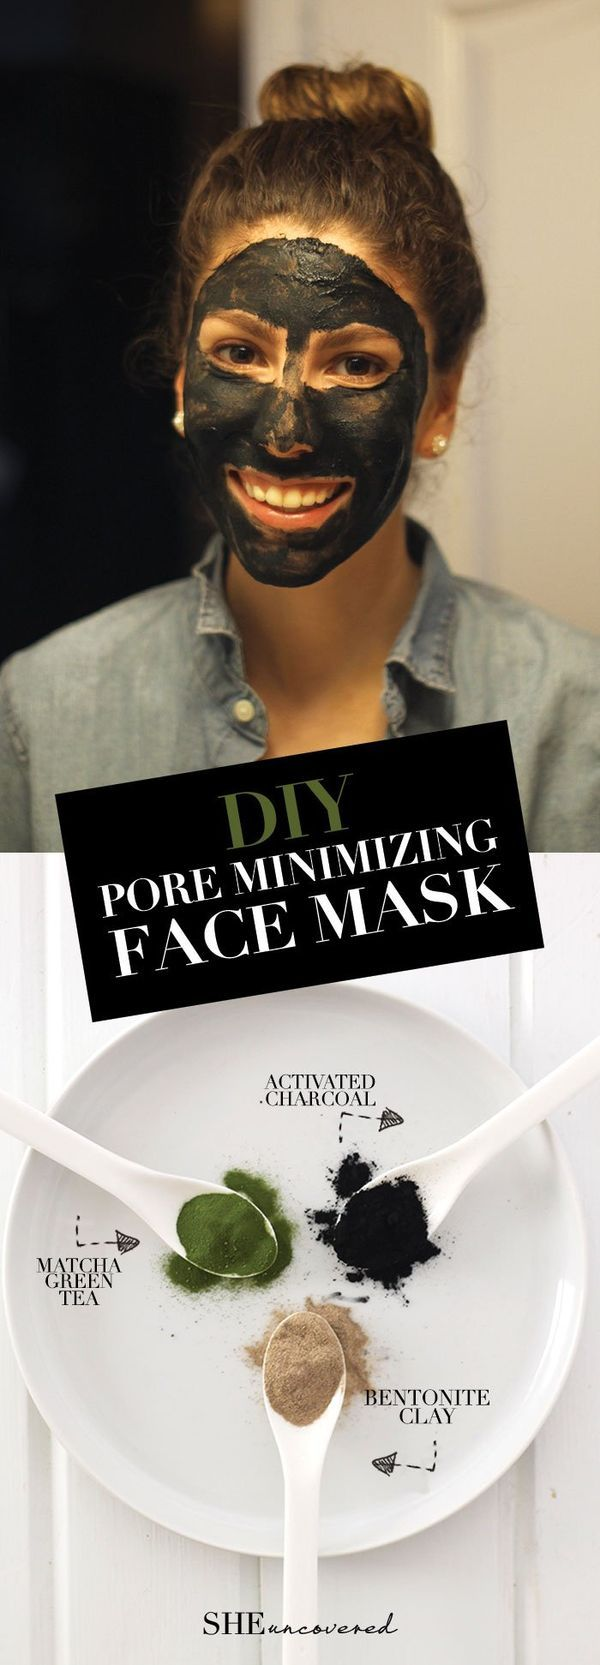 DIY Pore Minimizing Face Mask made from just 3 all-natural ingredients! We love DIY skin care and beauty routines!